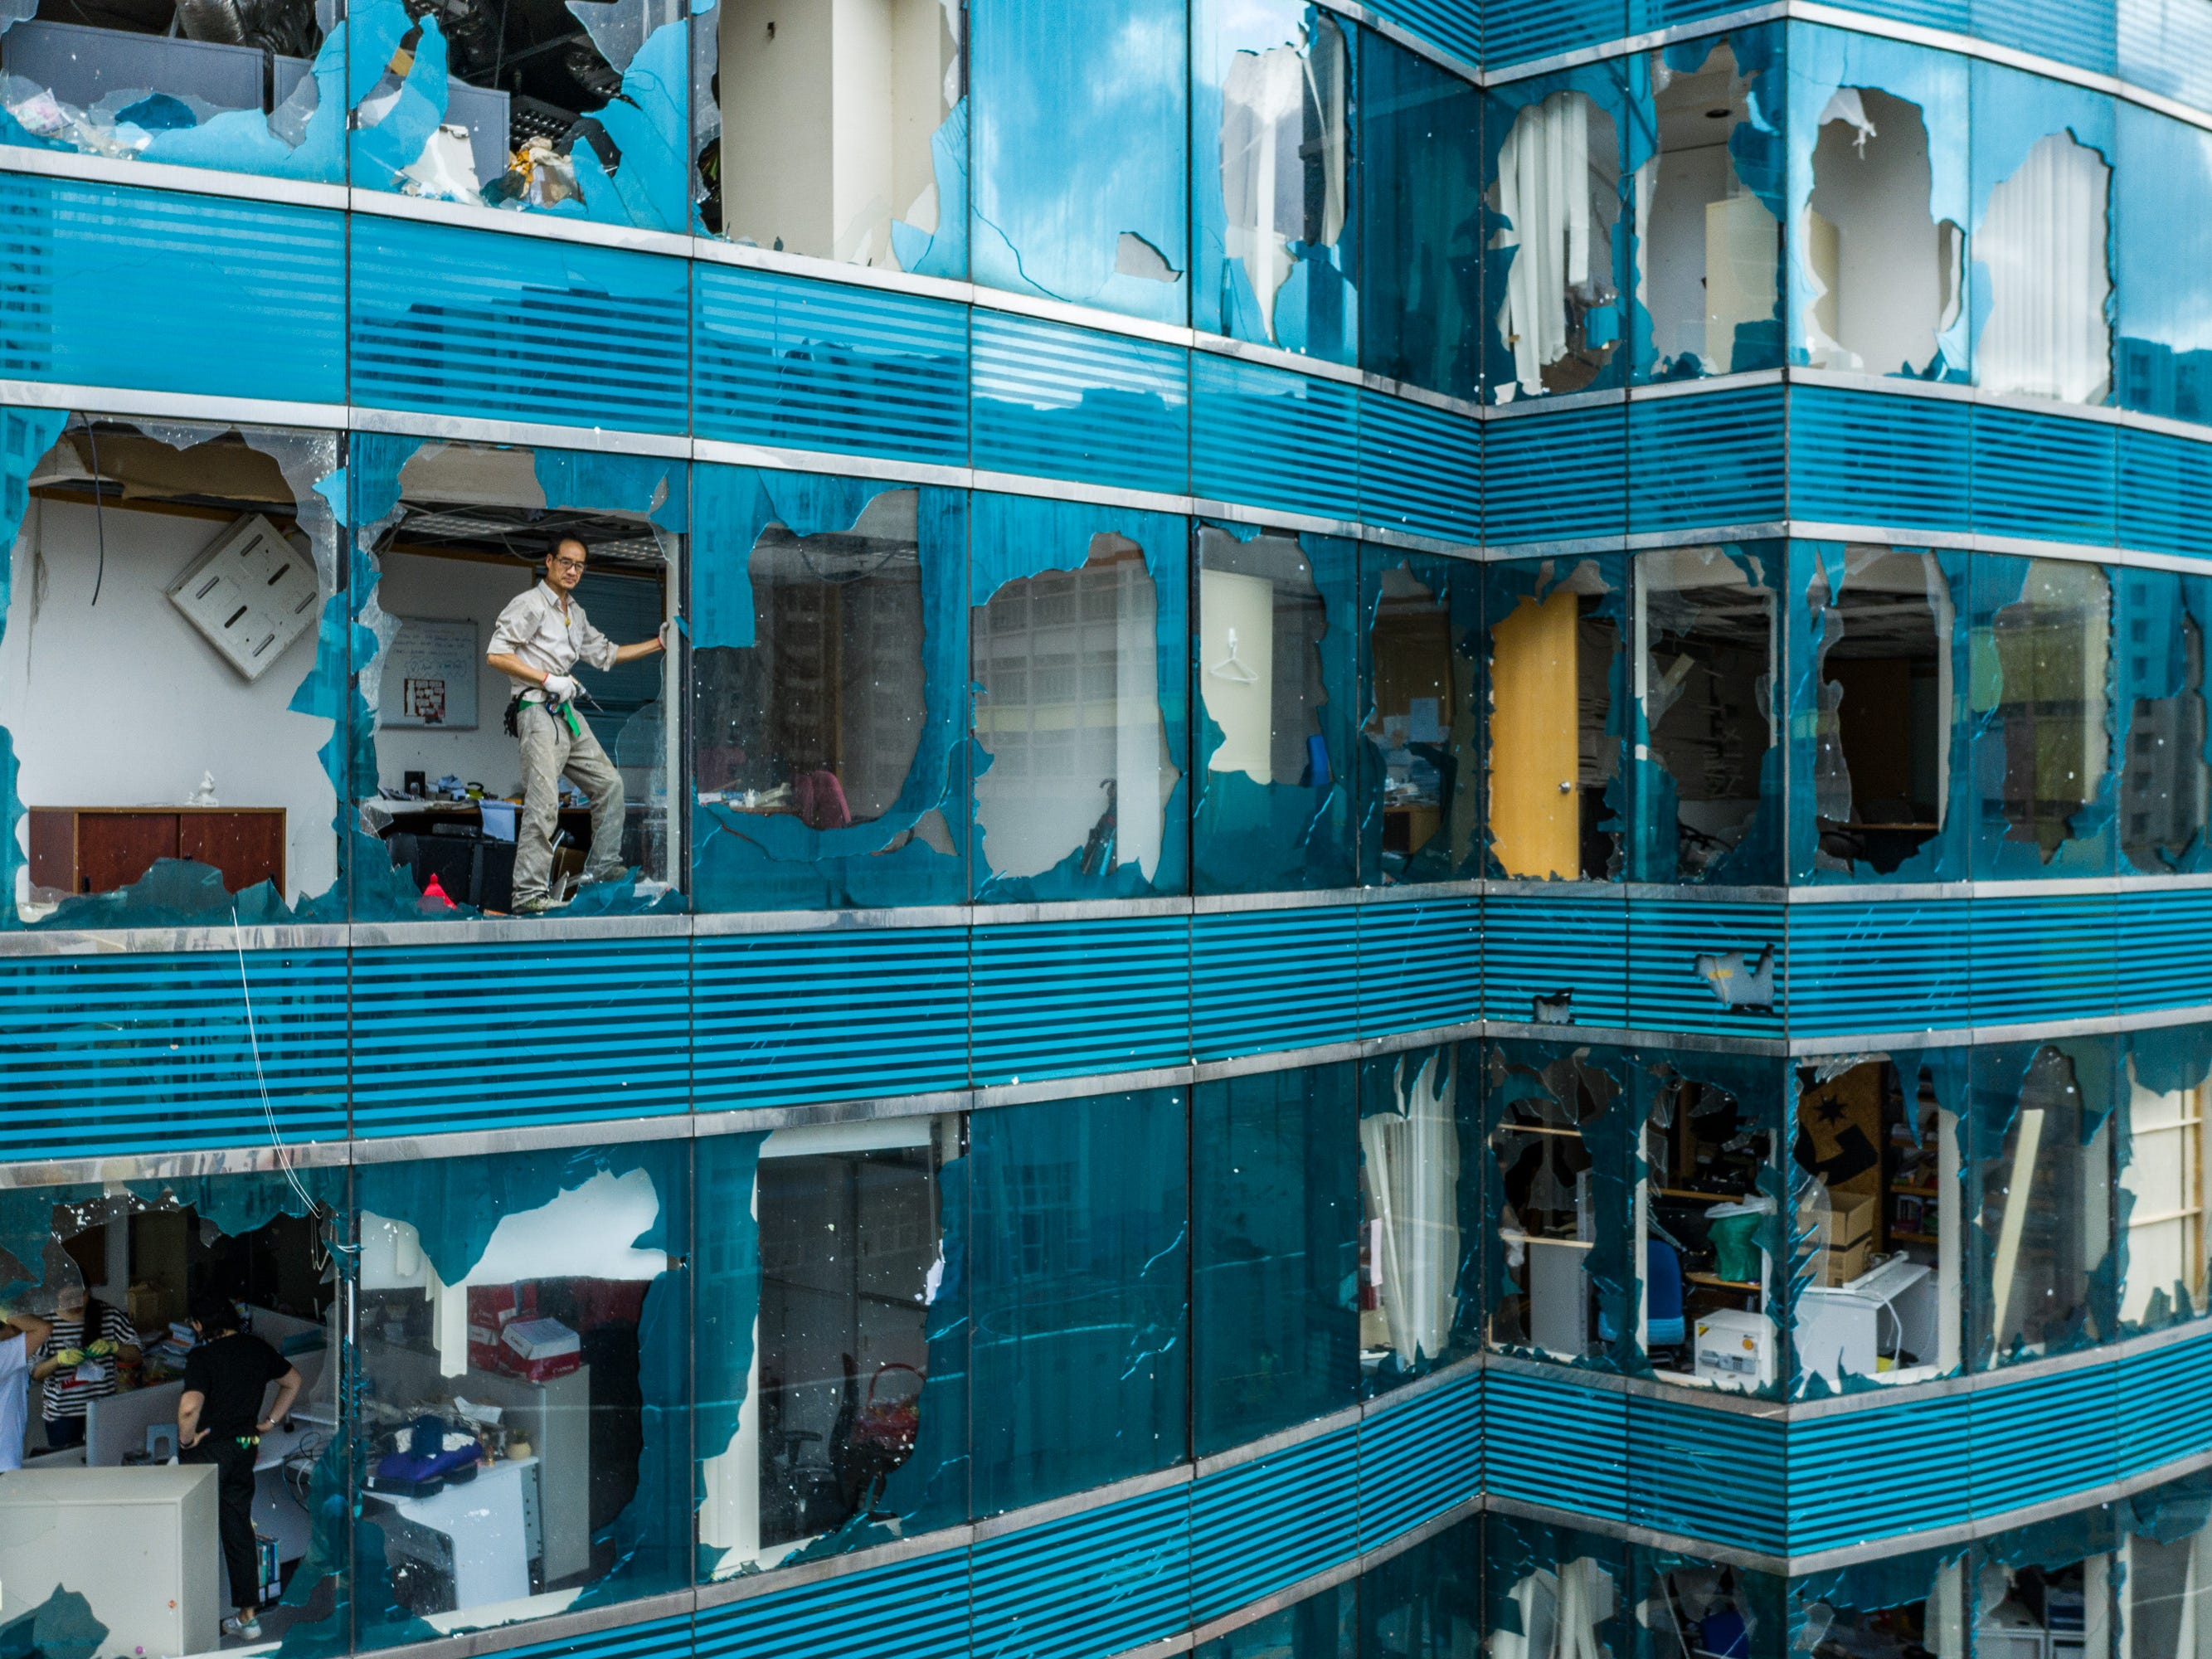 A man stands in a window of a heavily damaged building in the aftermath of Typhoon Mangkhut on September 17, 2018 in Hong Kong.